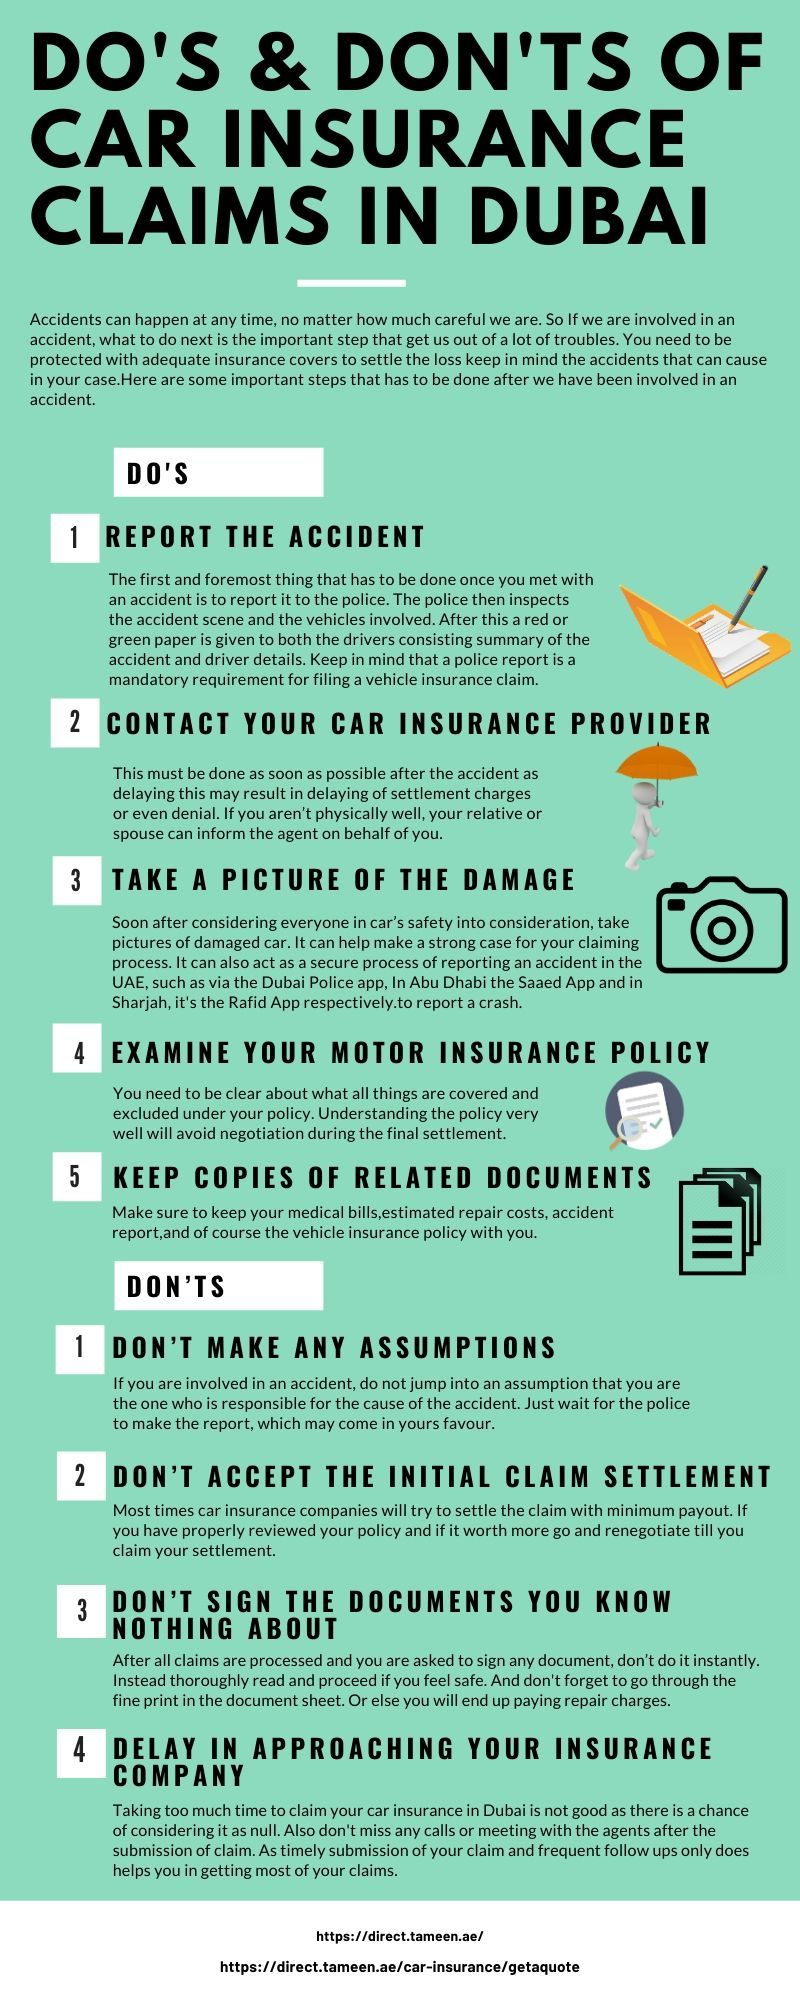 Do's and Don'ts of Car Insurance Claims in Dubai Car